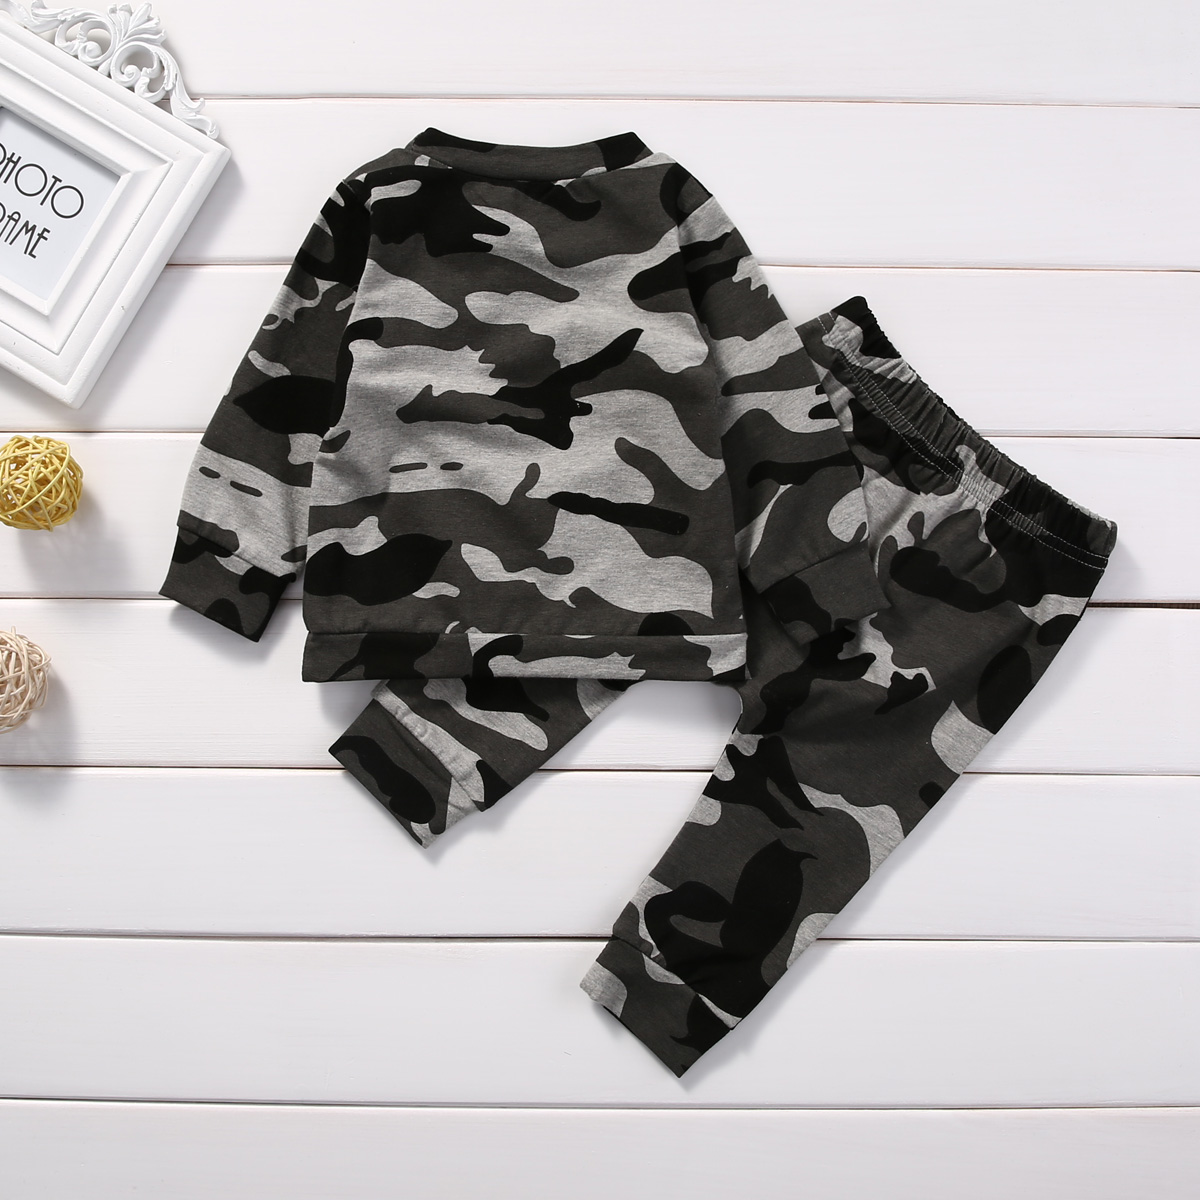 2pcs-new-baby-clothing-set-Toddler-Infant-Camouflage-Baby-Boy-Girl-Clothes-T-shirt-TopsPants-Outfits-Set-1